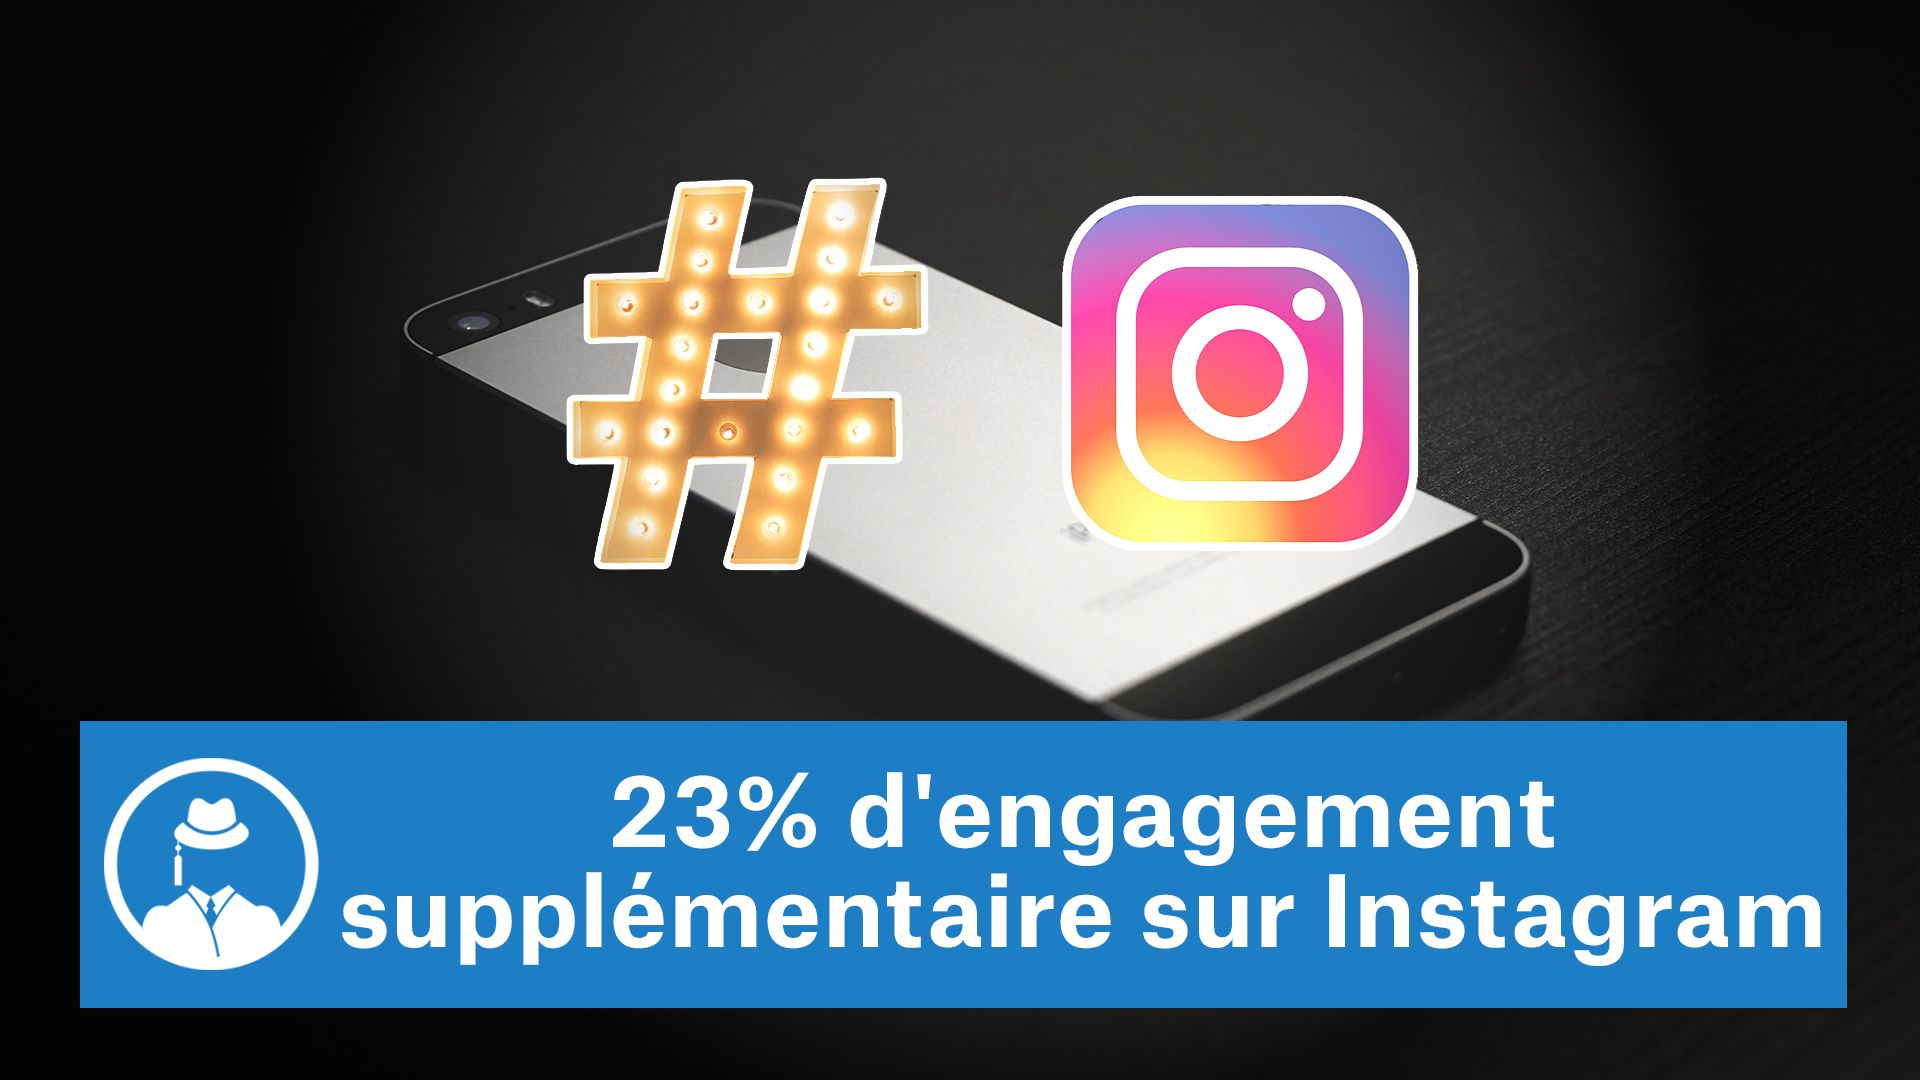 23% d'engagement supplémentaire sur Instagram [étude] #GrowthHacking #WebMarketing #FormationGrowthHacking #CentreDeFormationFrance #TunnelAARRR #AARRR #SocialMedia #CommunityManagement #SEO #MarketingDigital #SiteWeb #instagram